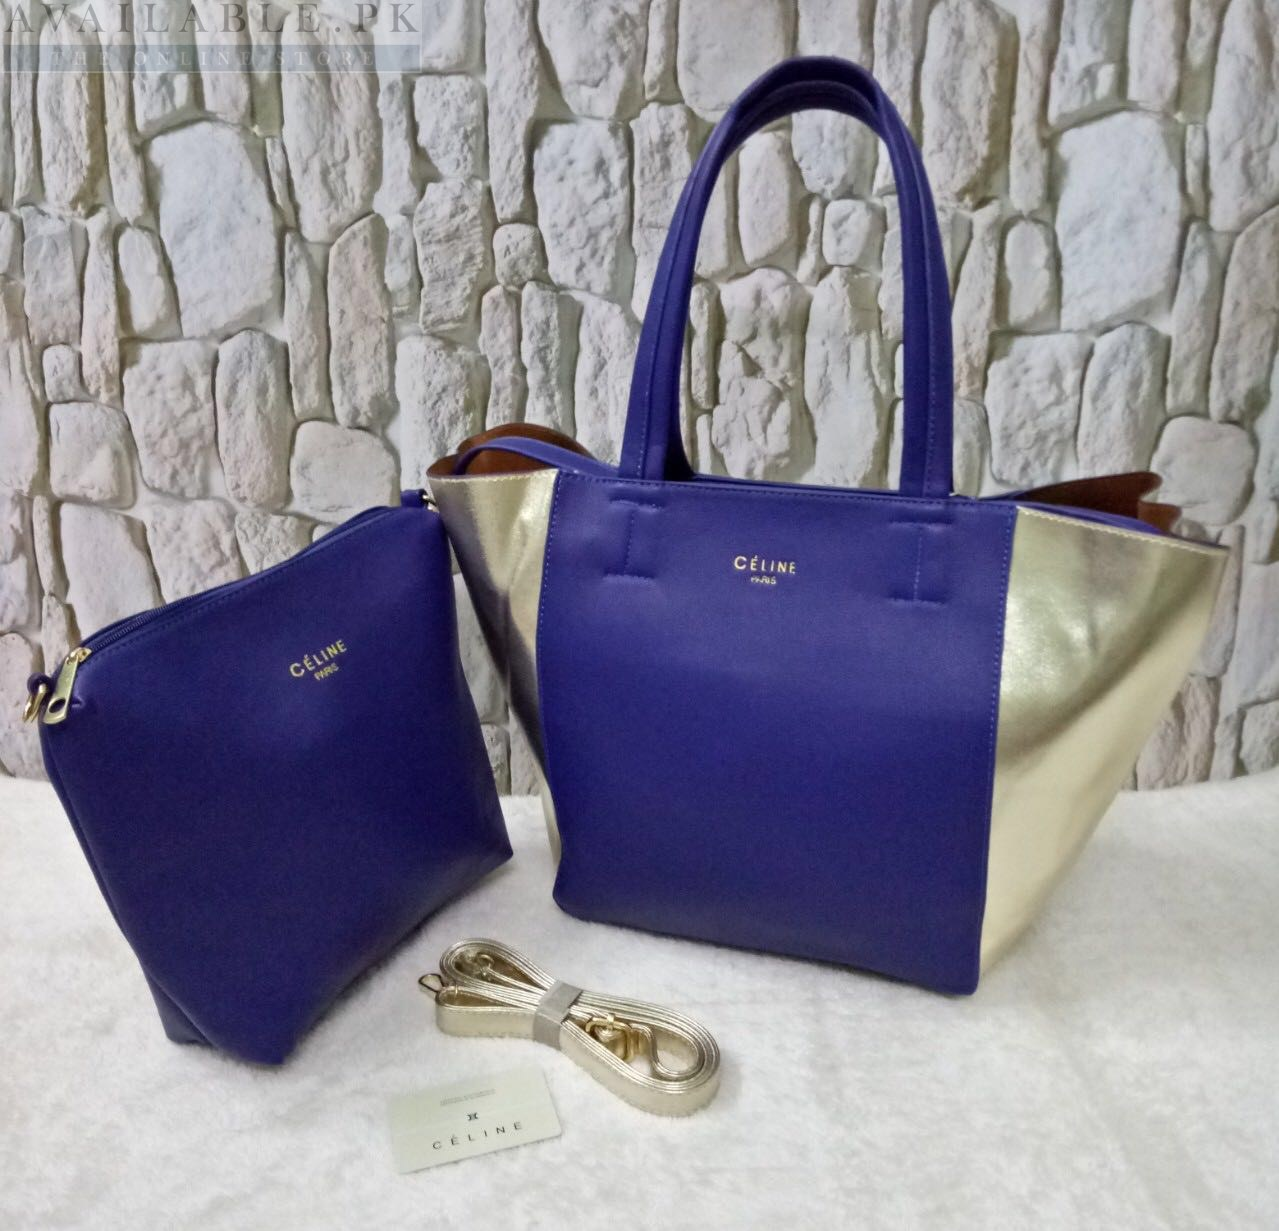 856c8fd7c146 Celine Blue 2 in 1 Women s Hand Bag Price In Pakistan